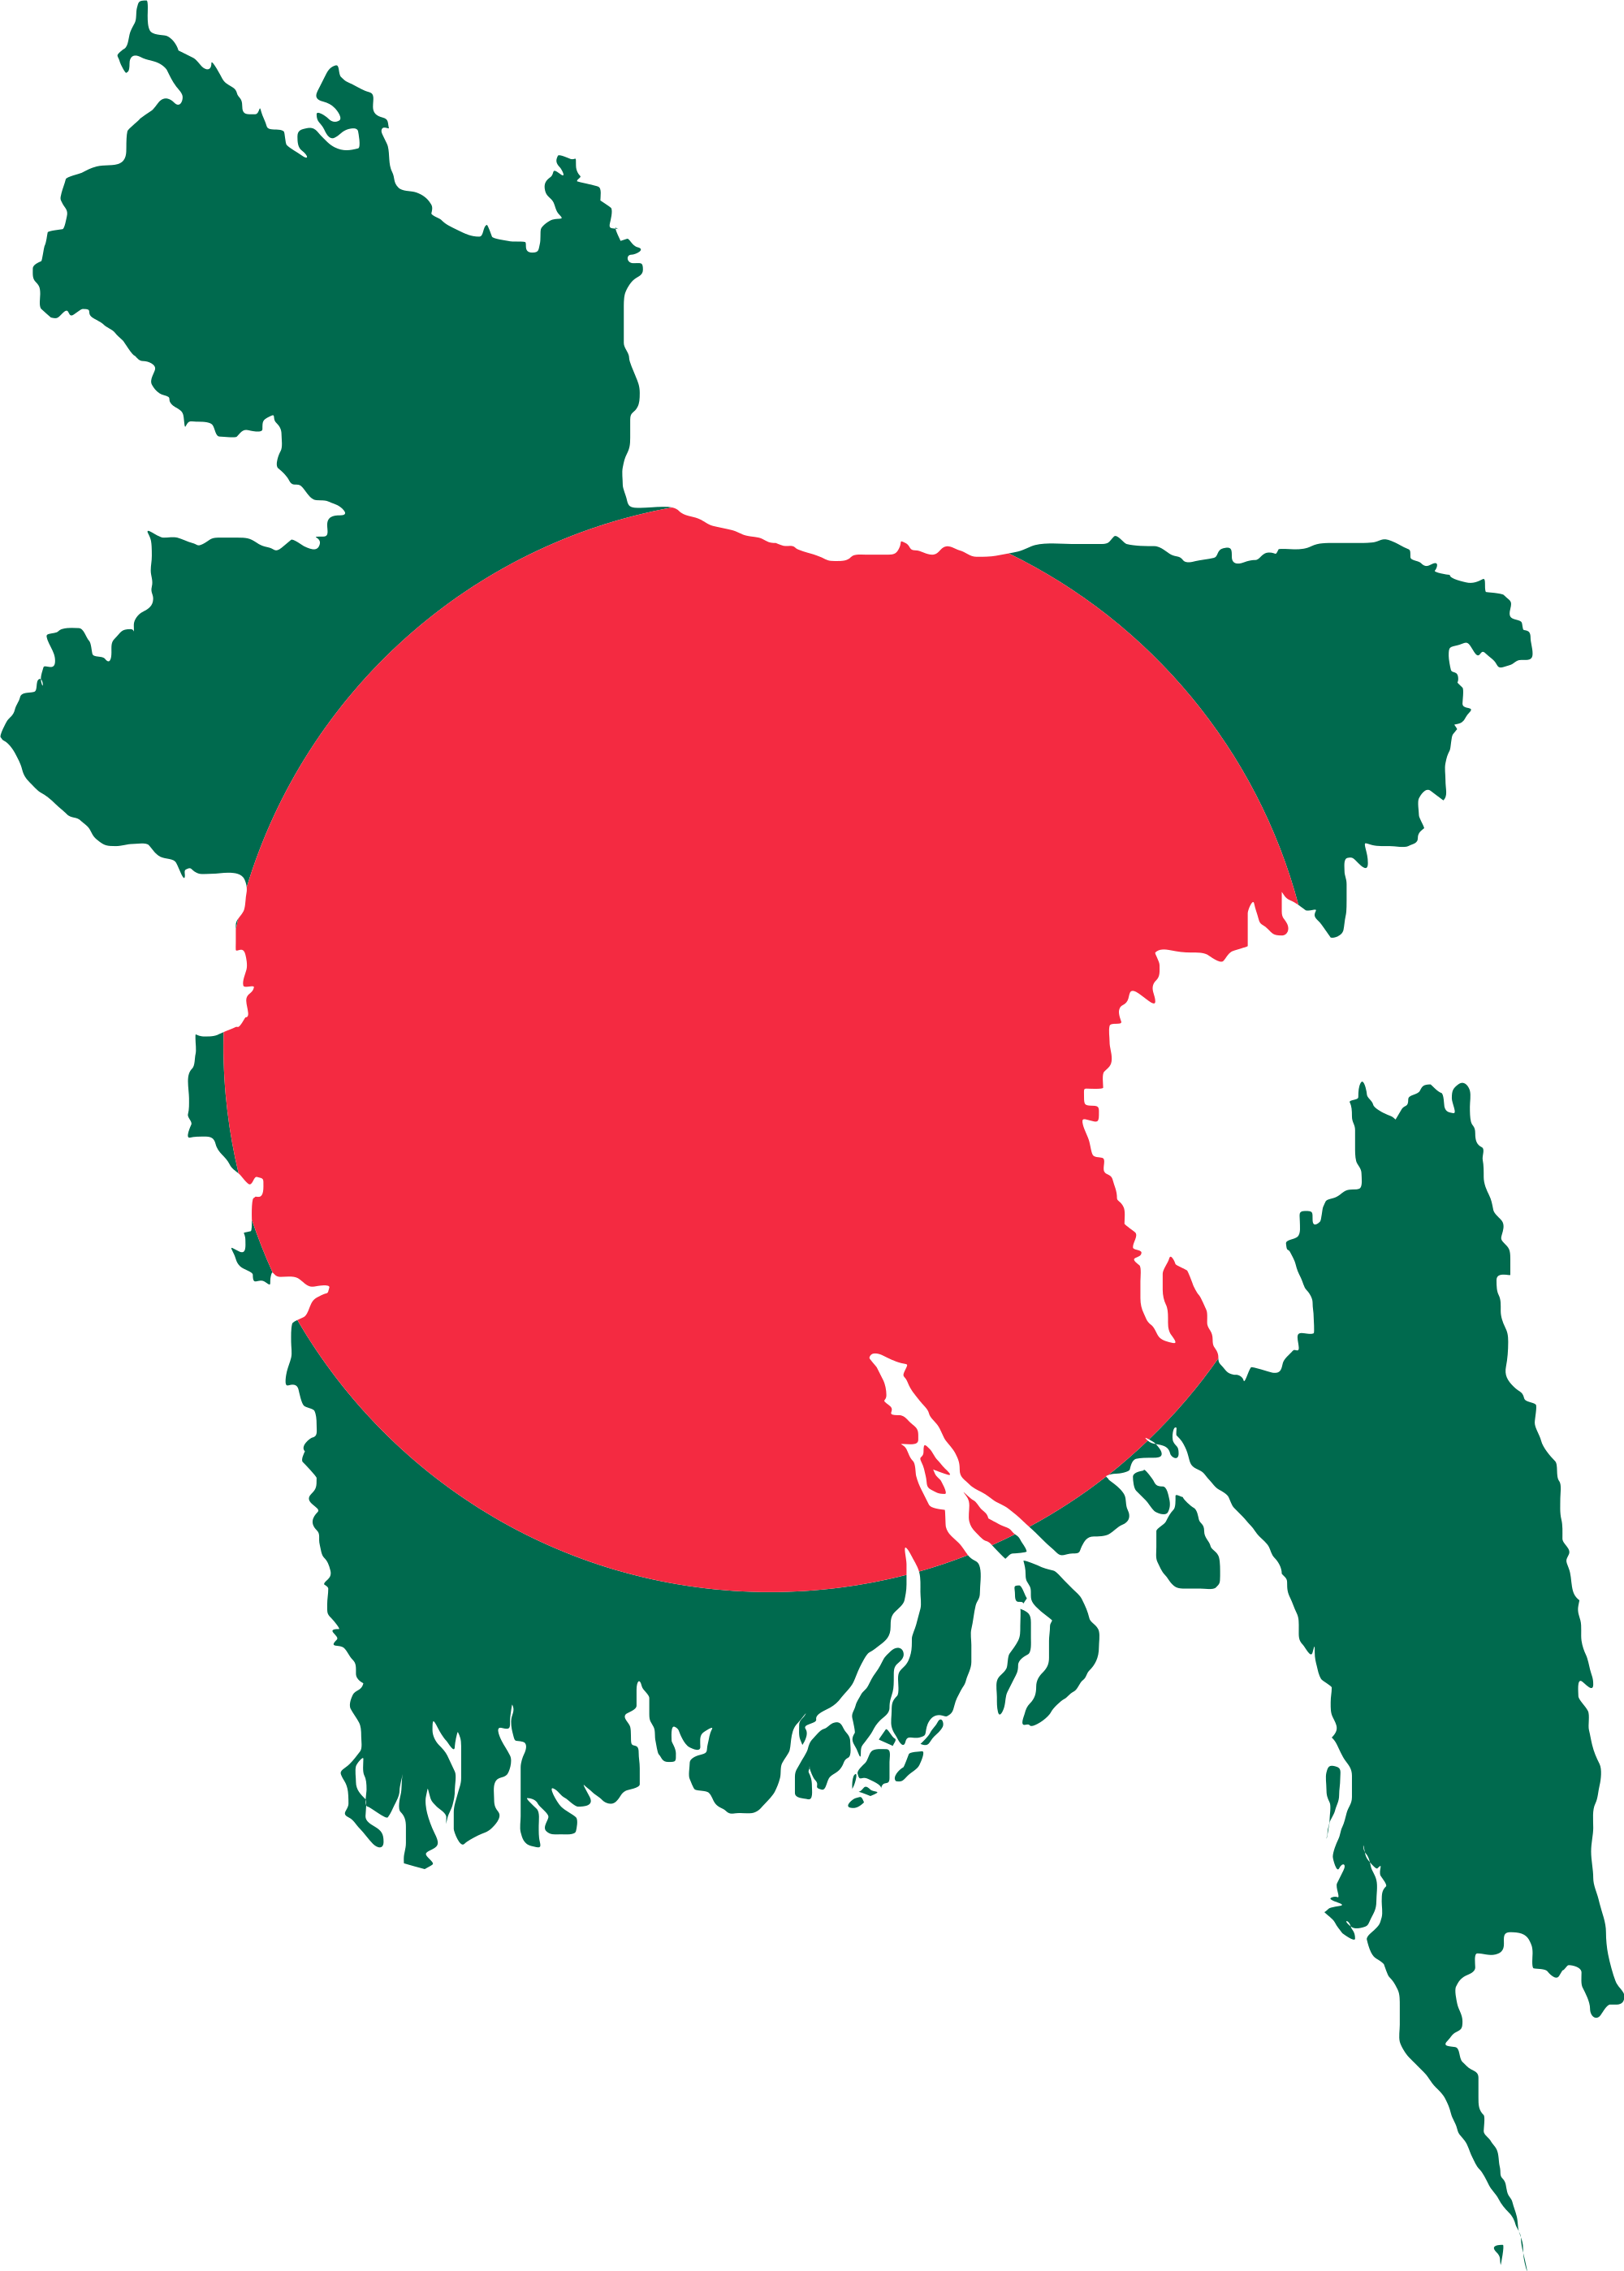 Bangladesh flag google search getting inked pinterest bangladesh flag google search gumiabroncs Image collections